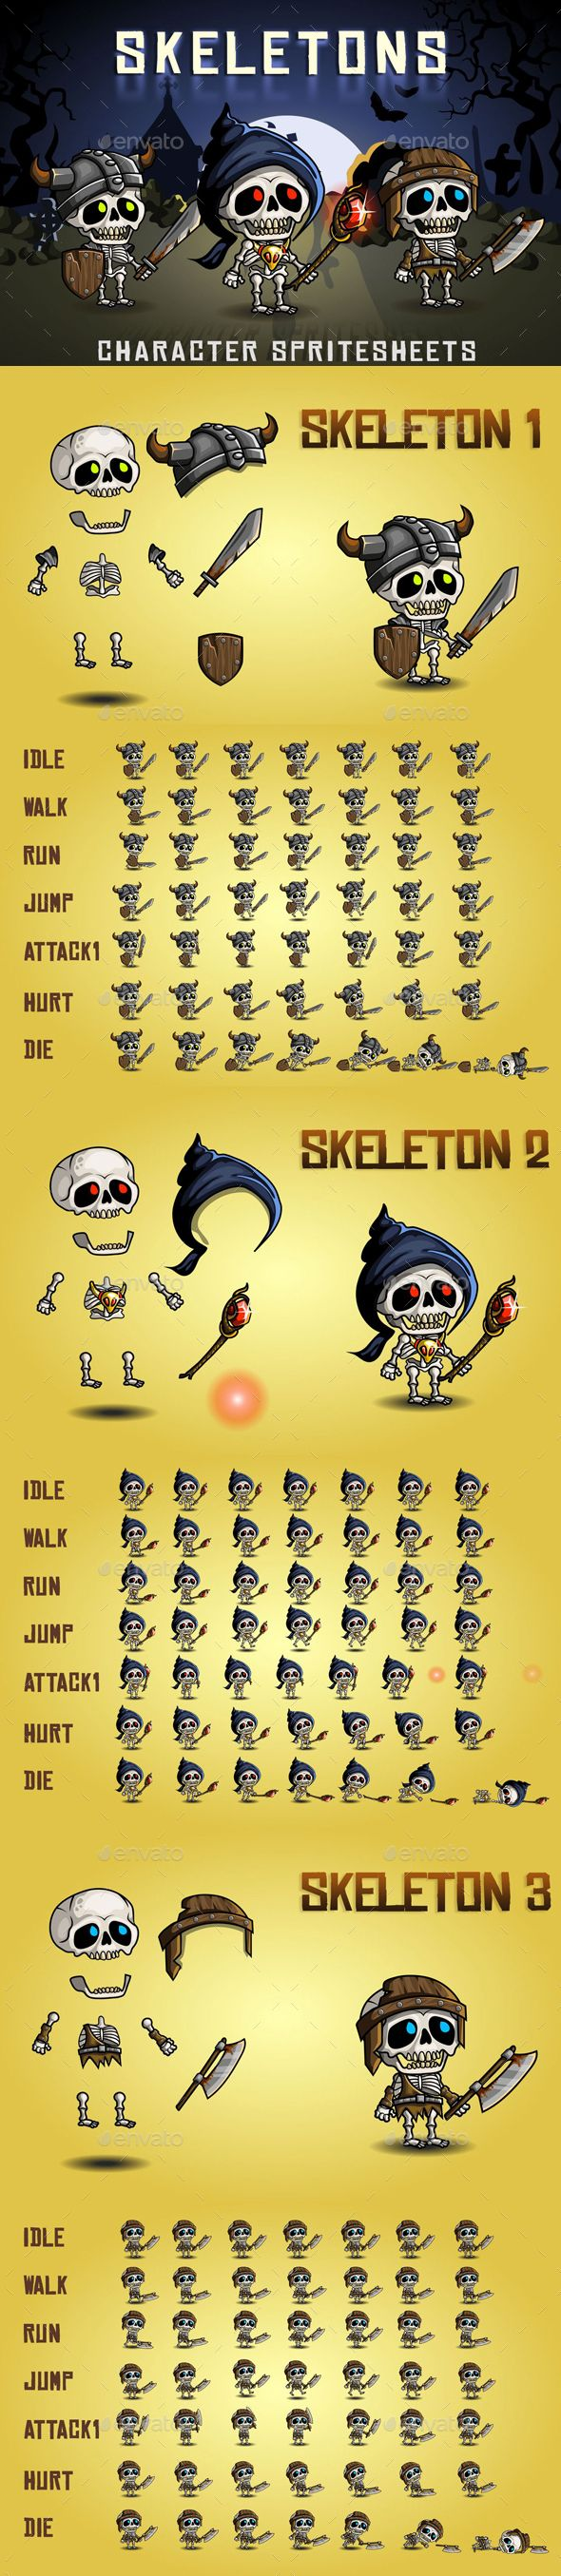 #Skeletons #2D #Game #Character #Sprite #Sheet #Template - Sprites Game #UI #UX #Assets #Design. Download here: https://graphicriver.net/item/skeletons-2d-game-character-sprite-sheet/19563497?ref=yinkira